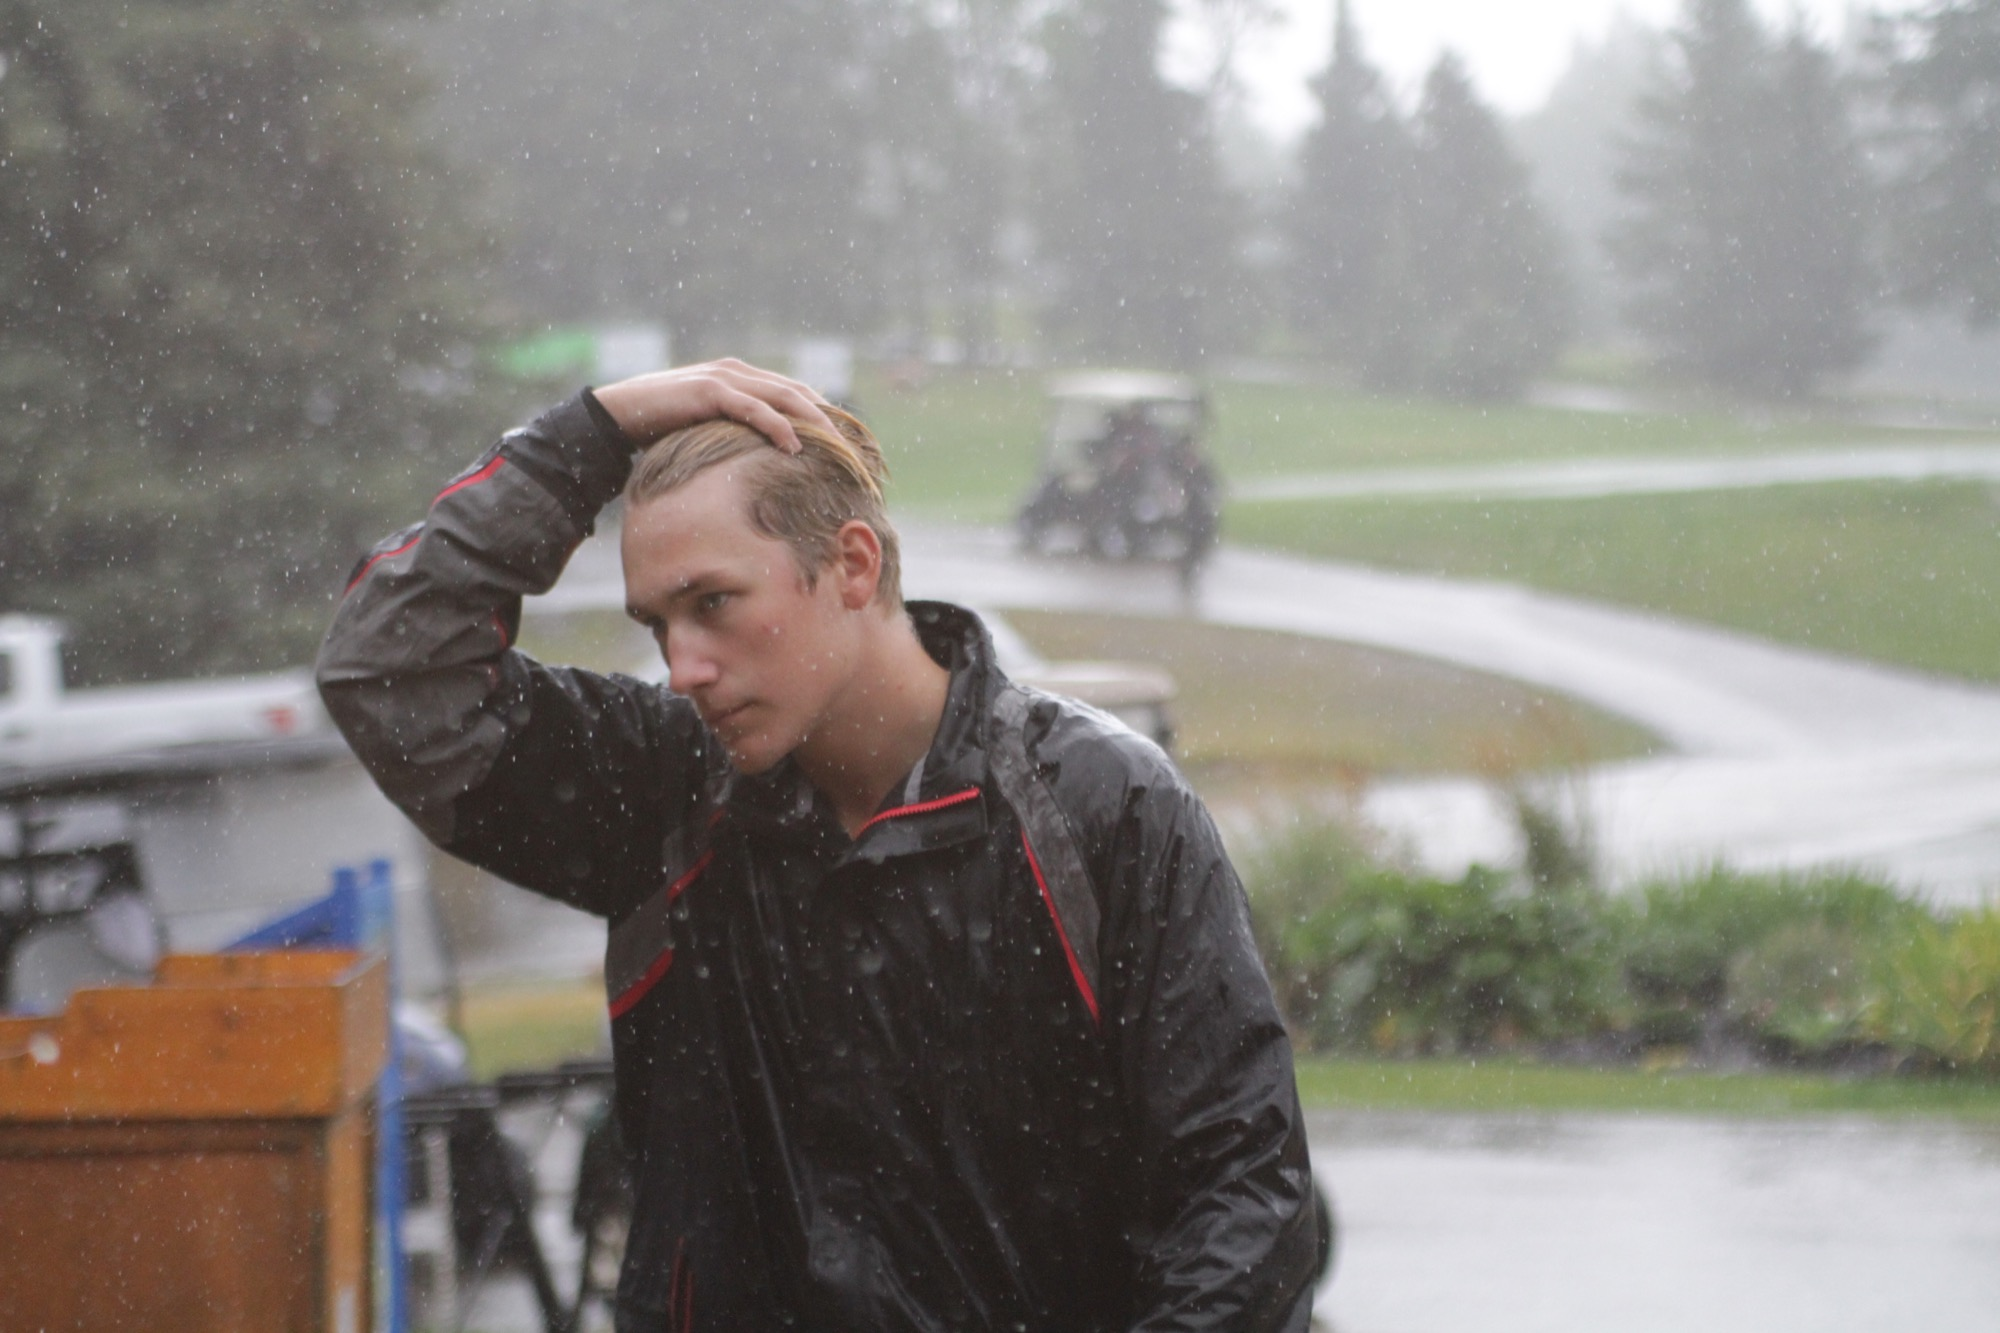 Brad Letain walks back to the pro shop after a horn sounded for a weather delay during the Tamarack golf tournament at Clear Lake Golf Course on Saturday. (Thomas Friesen/The Brandon Sun)